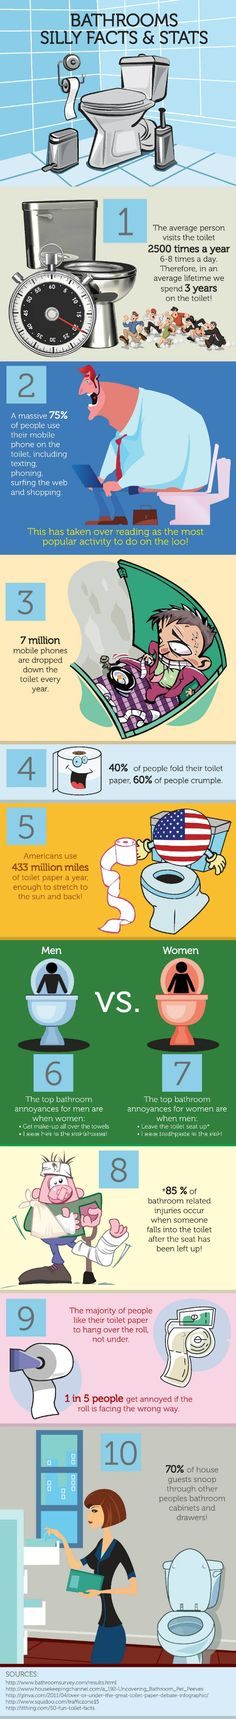 Bathroom Facts | Miscellaneous